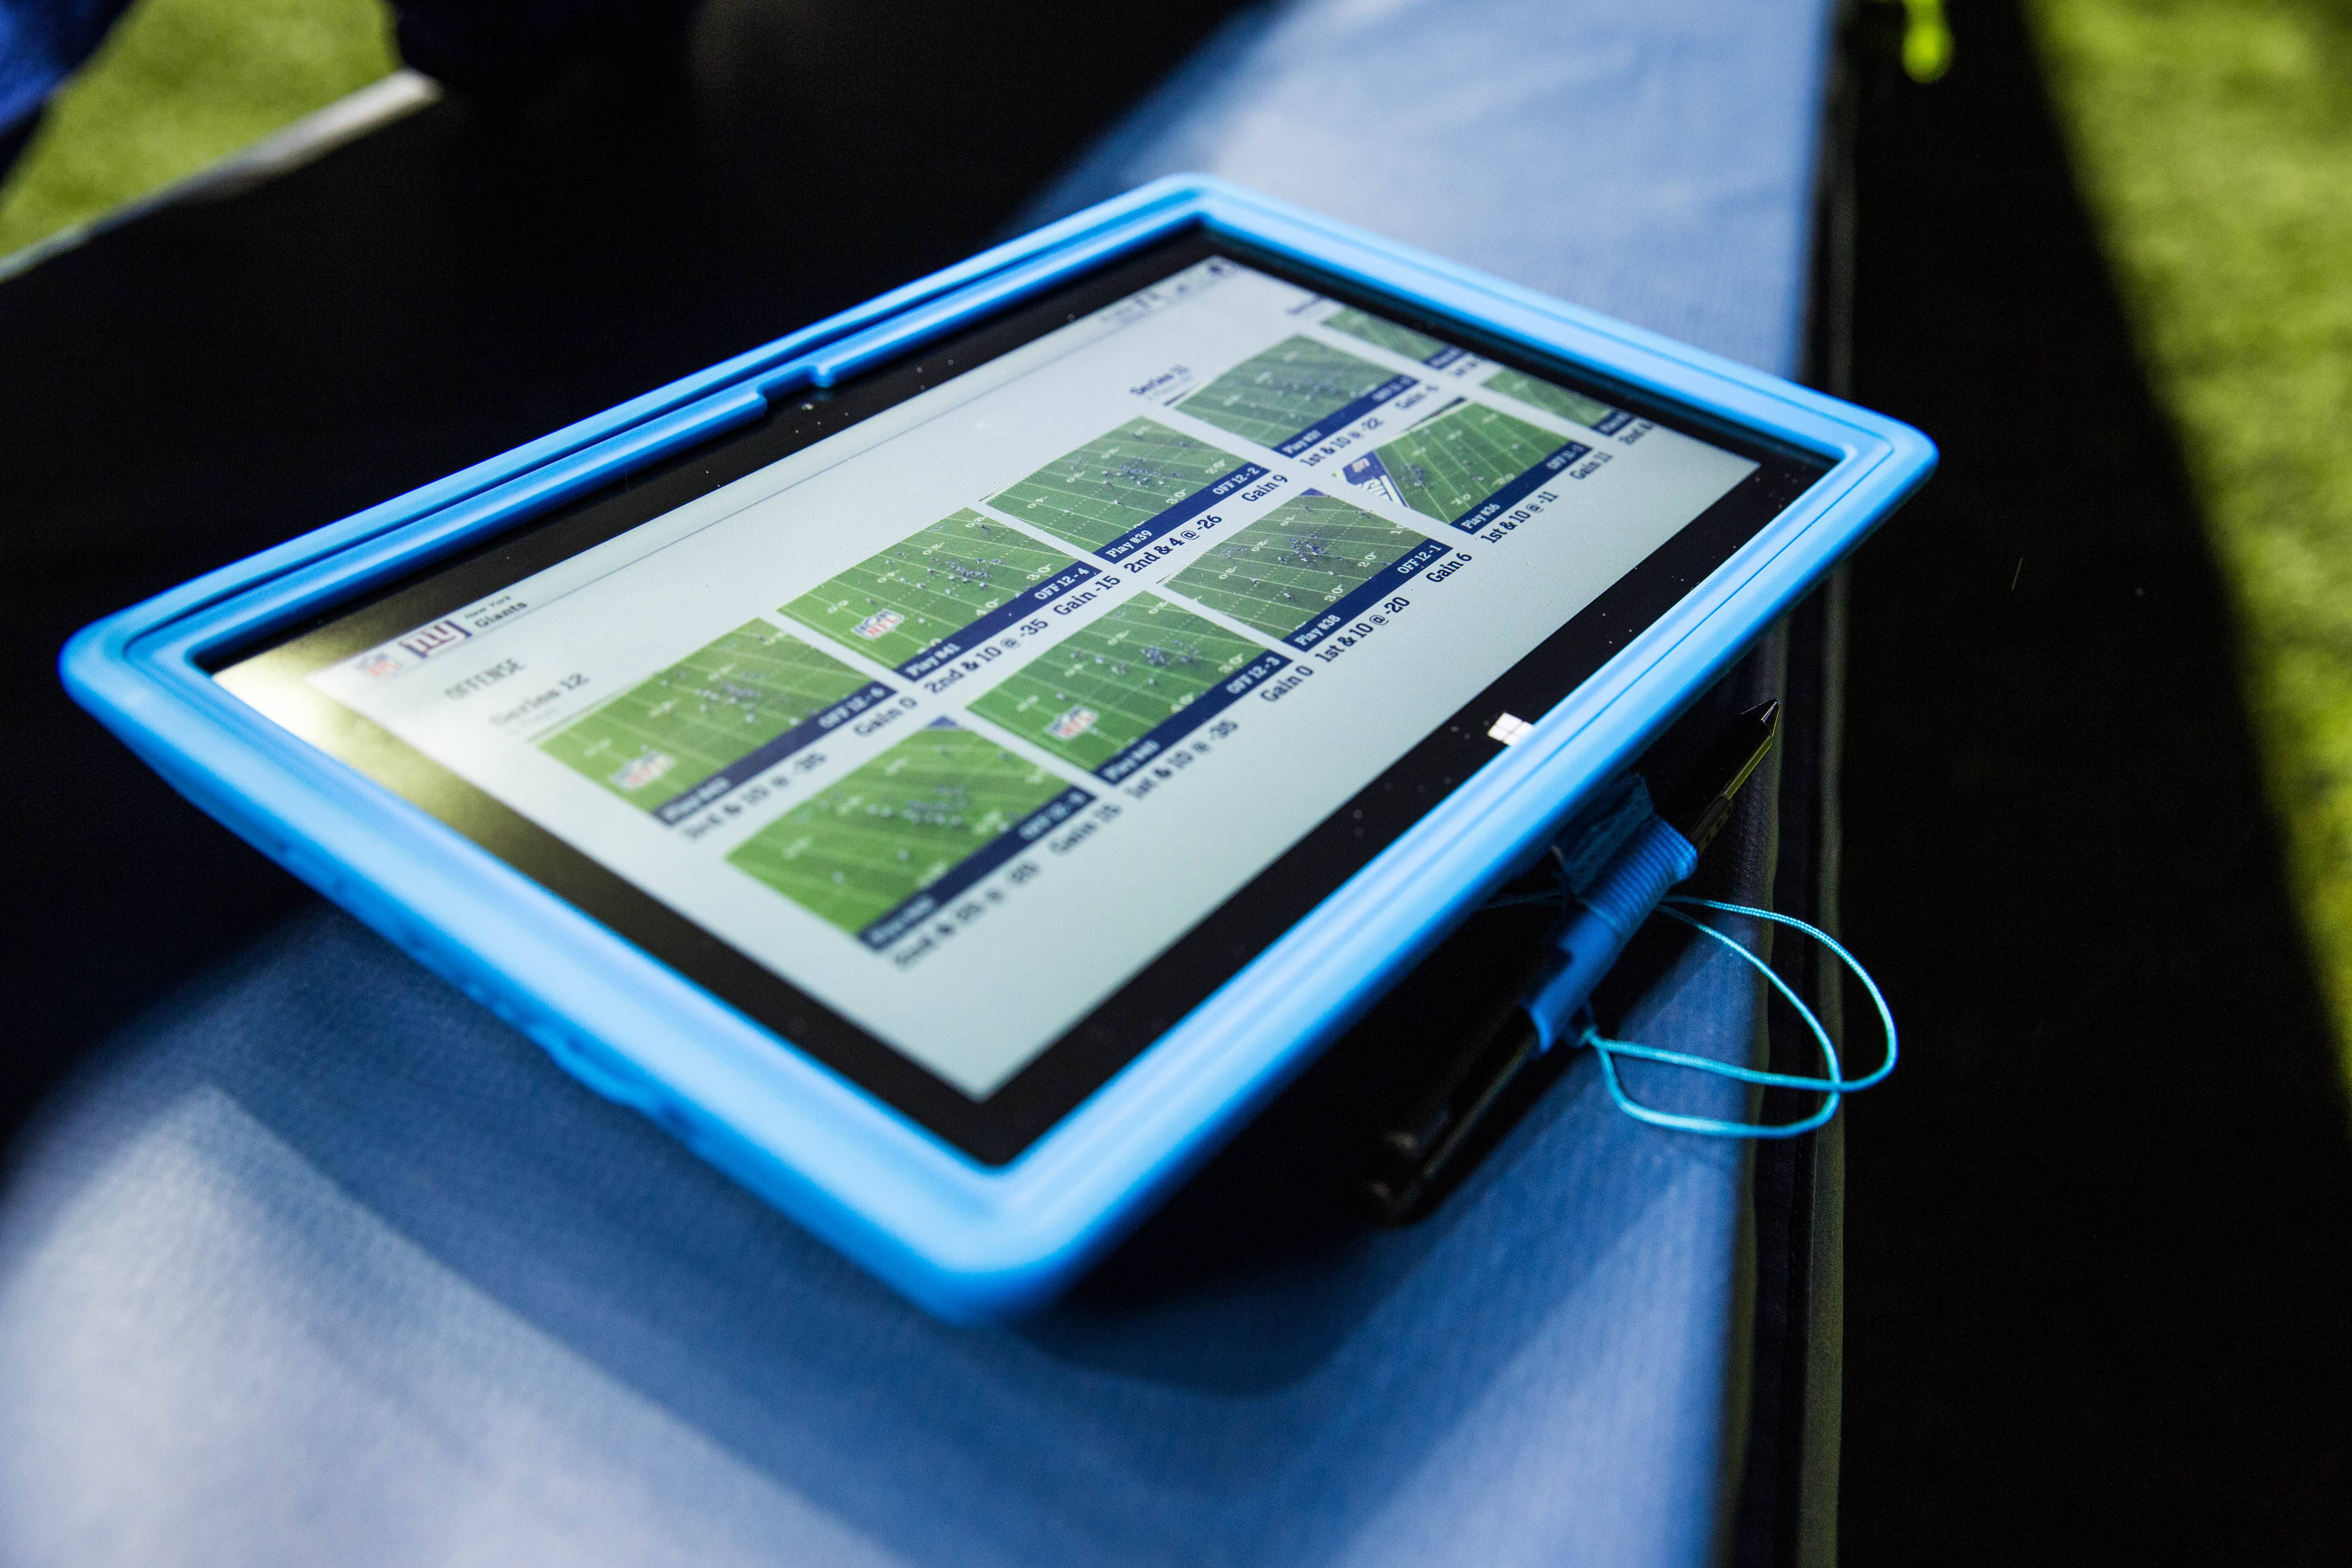 This undated photo provided by Microsoft shows Surface tablets that will be allowed for the first time on the sideline of NFL football games starting with Sunday's Hall of Fame game in Canton, Ohio, though they won't exactly be running the most cutting-edge apps.